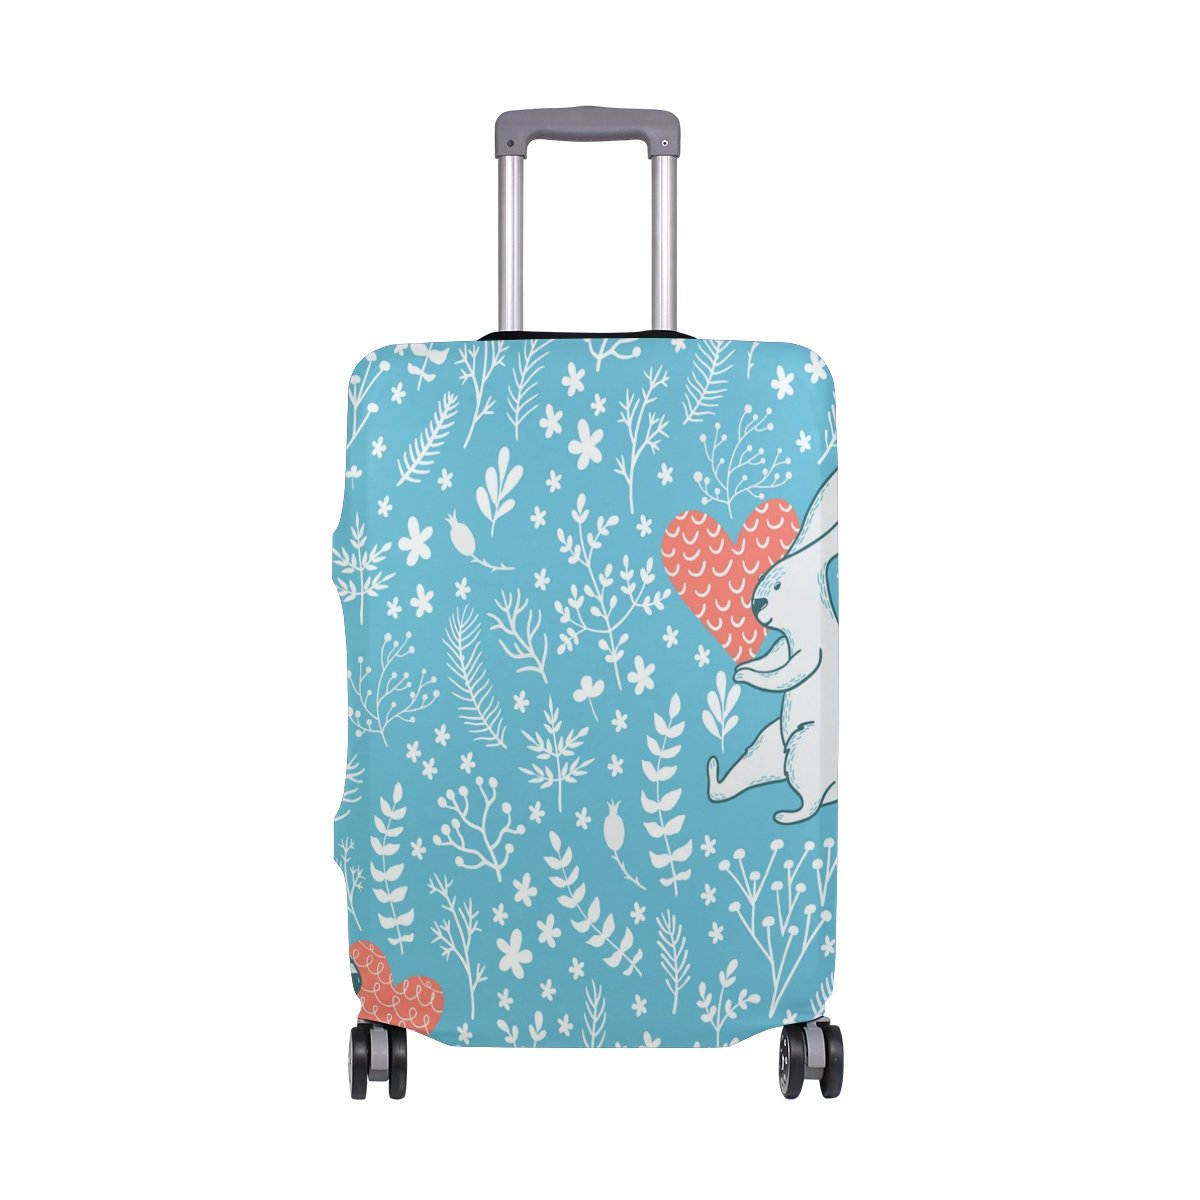 Cute Rabbit Love Floral Flowers Suitcase Luggage Cover Protector for Travel Kids Men Women